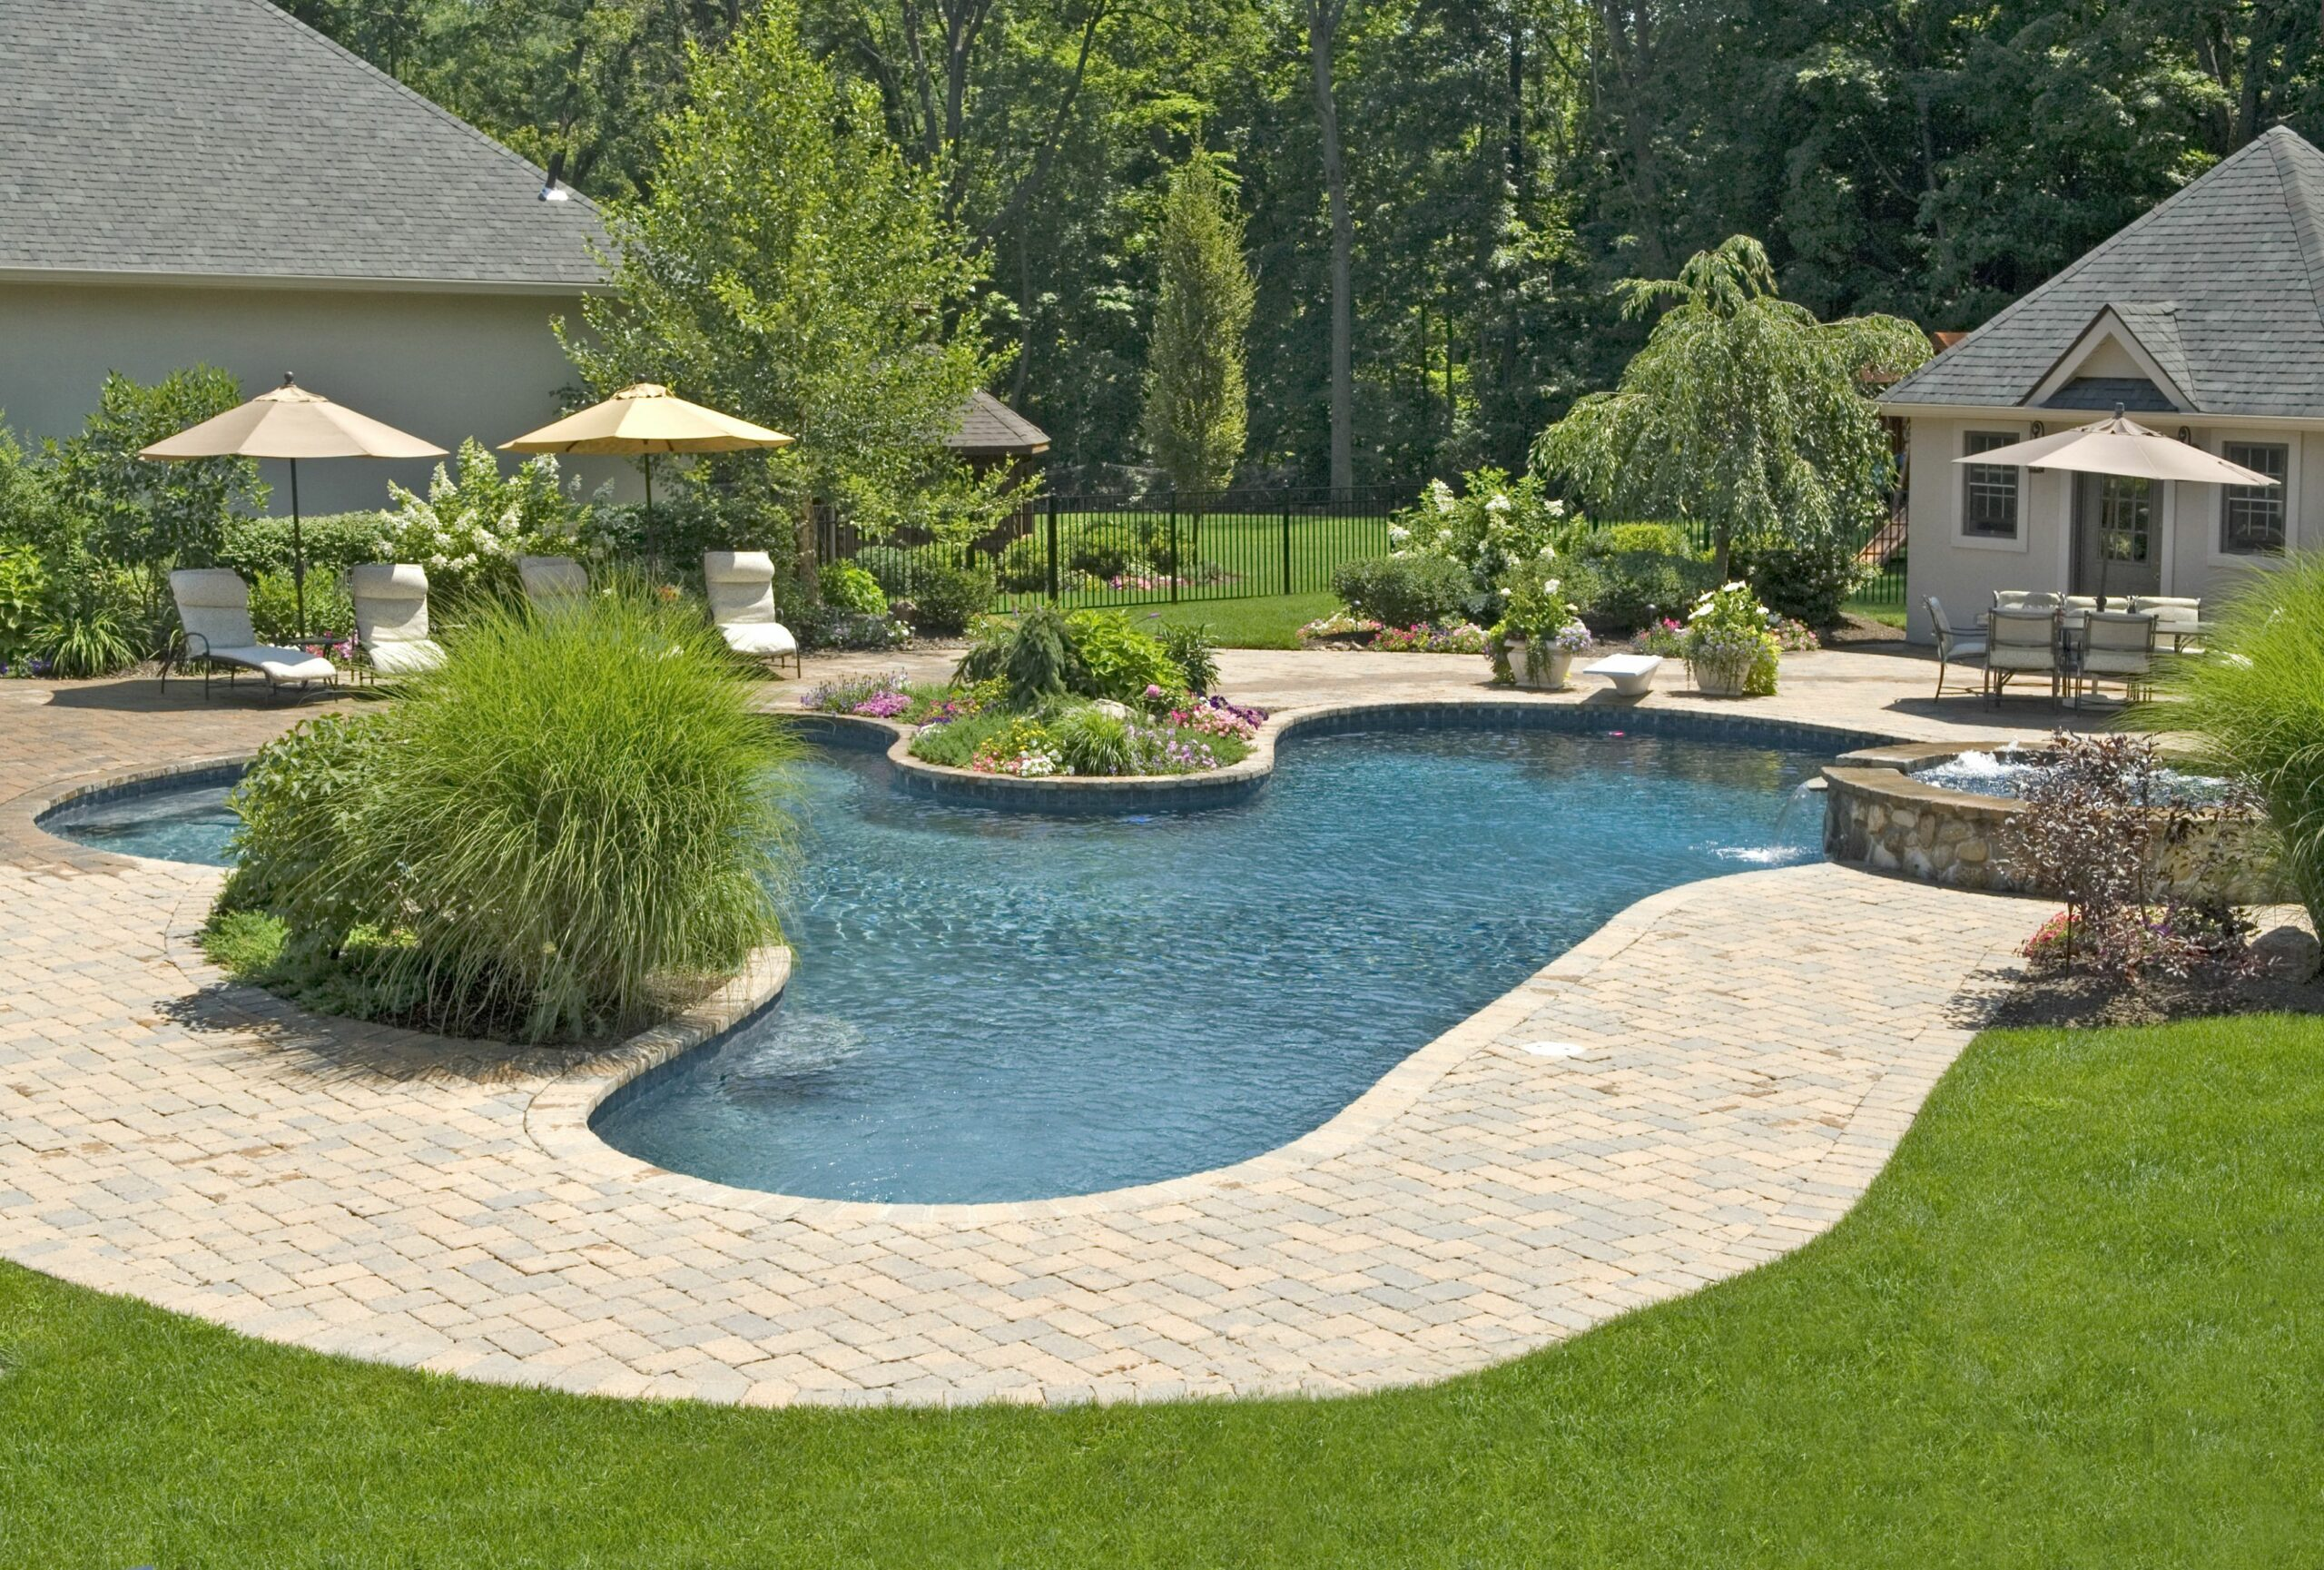 Backyard Ideas – Garden Design Ideas in Brisbane, Queensland - pool landscaping ideas queensland